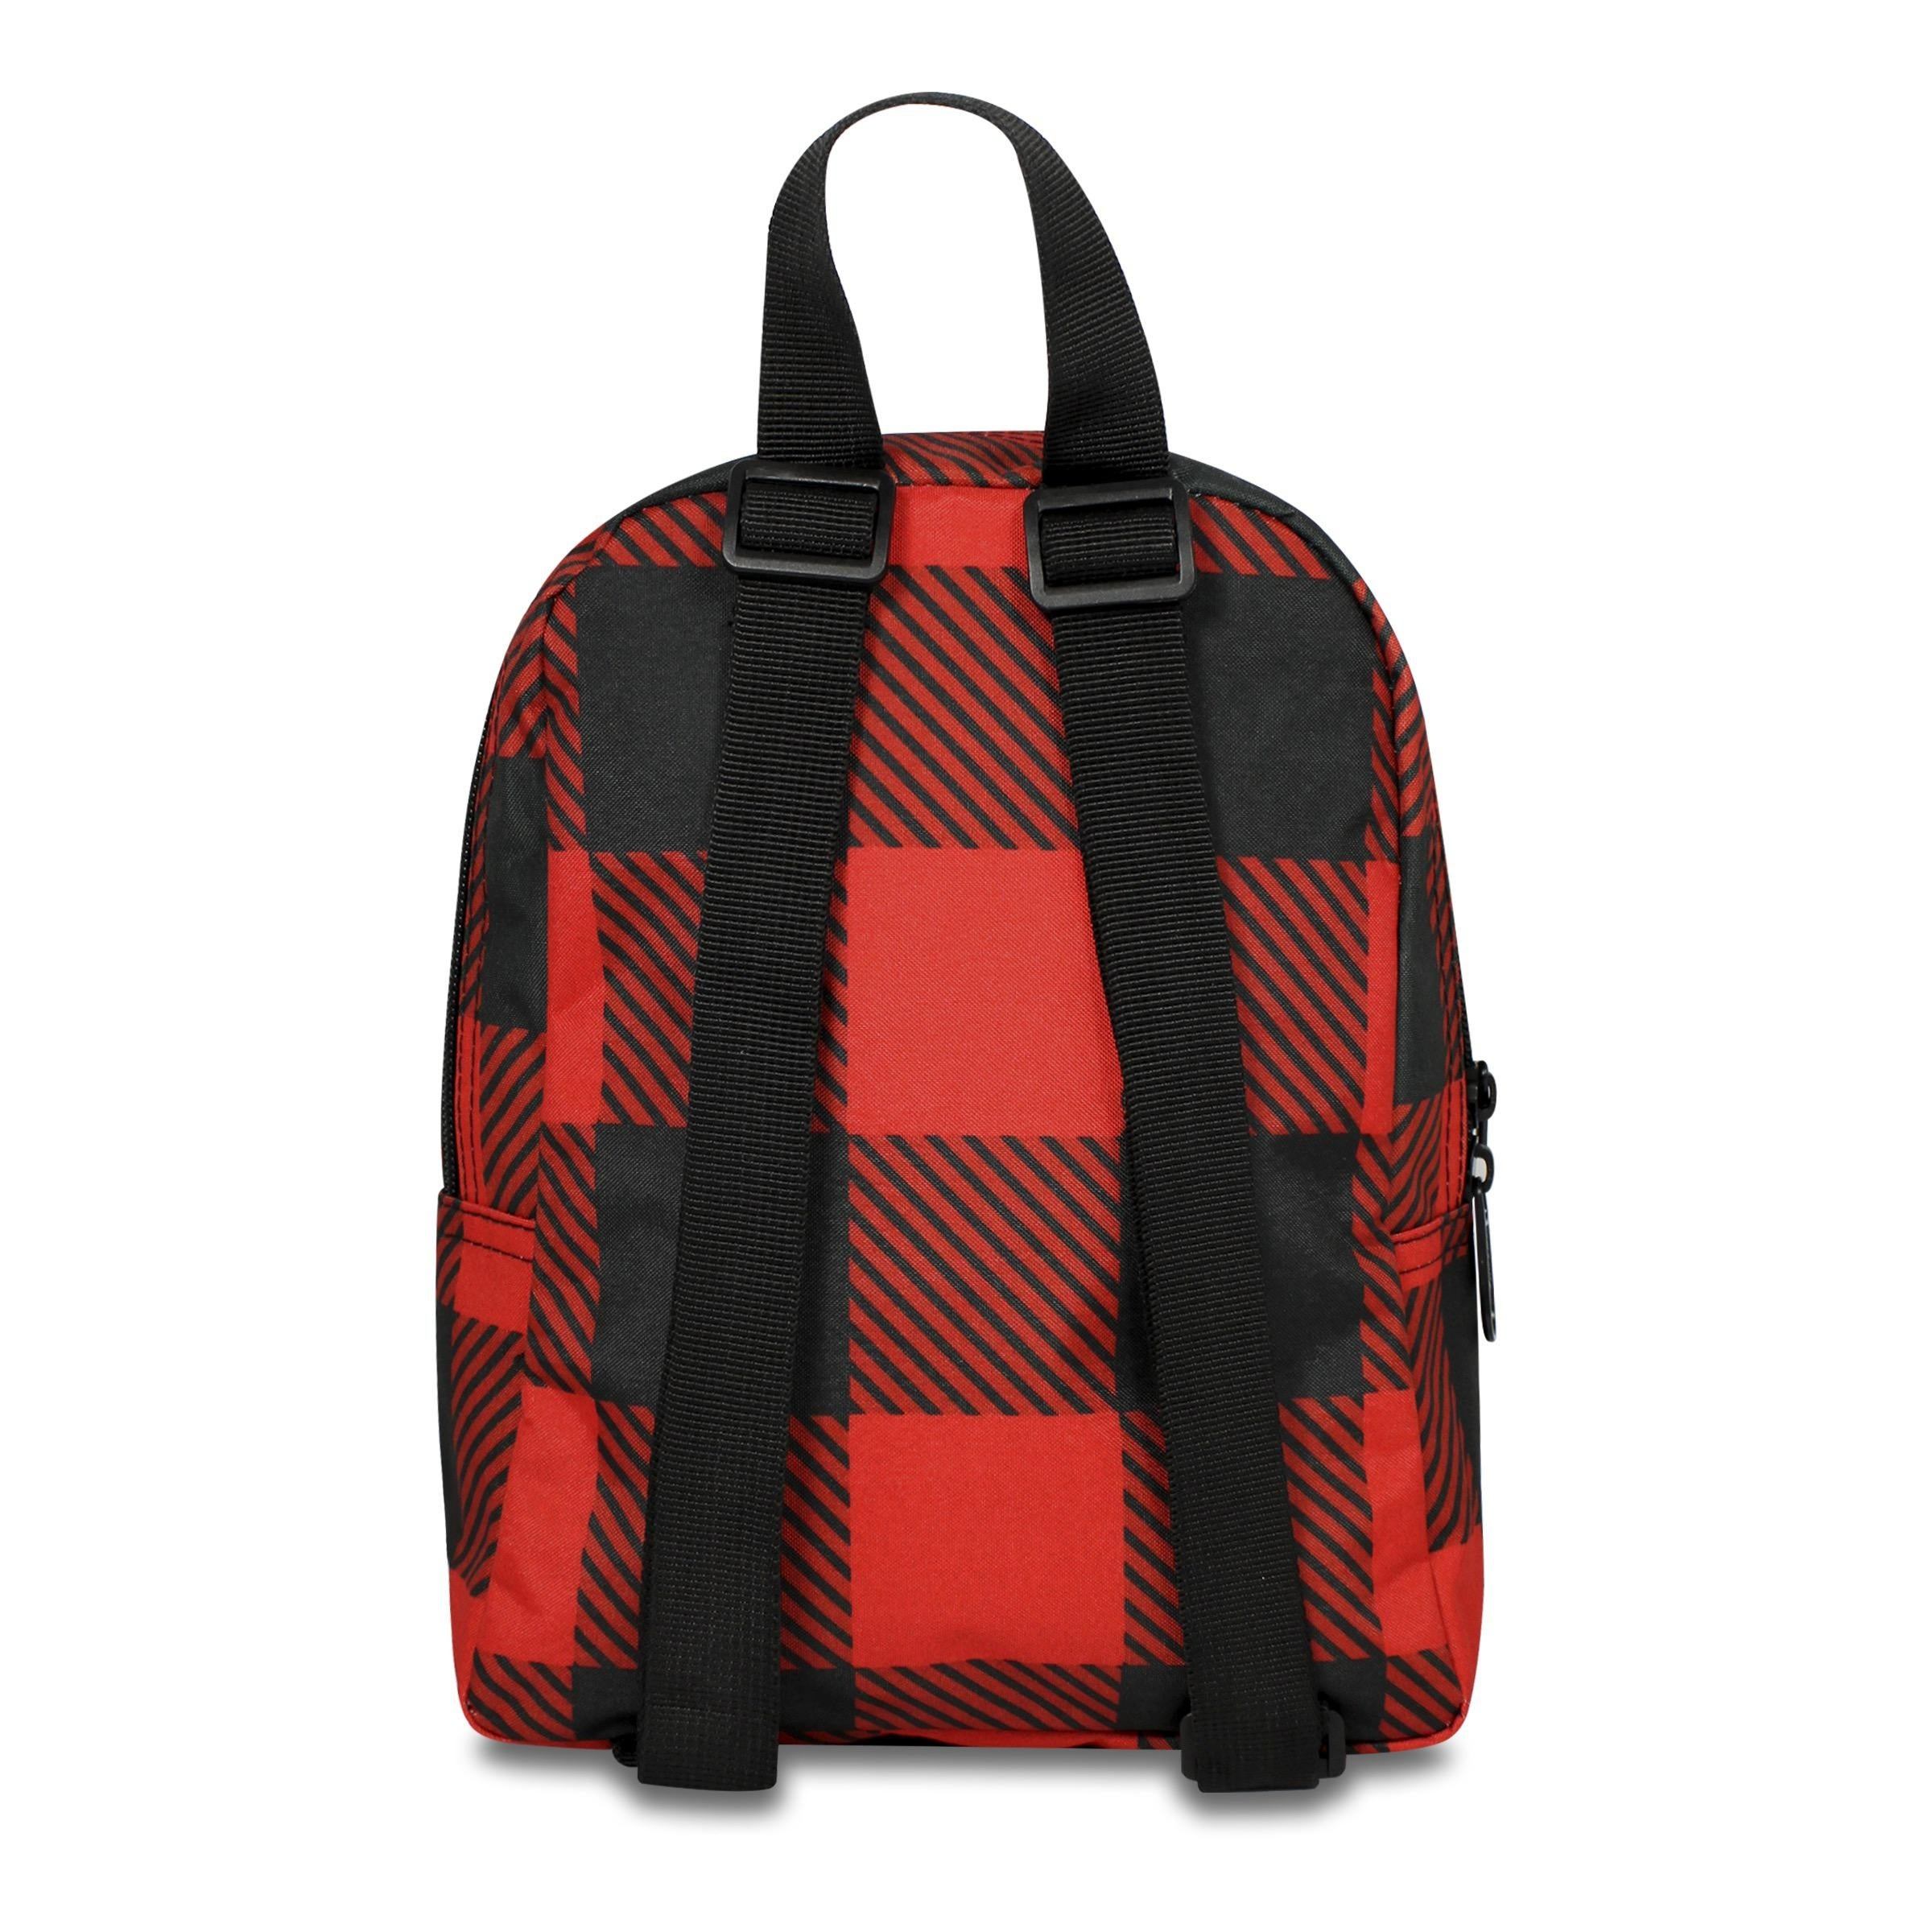 3136e51fa23 Dickies The Student Buffalo Plaid Backpack, Red Buffalo Plaid - one size